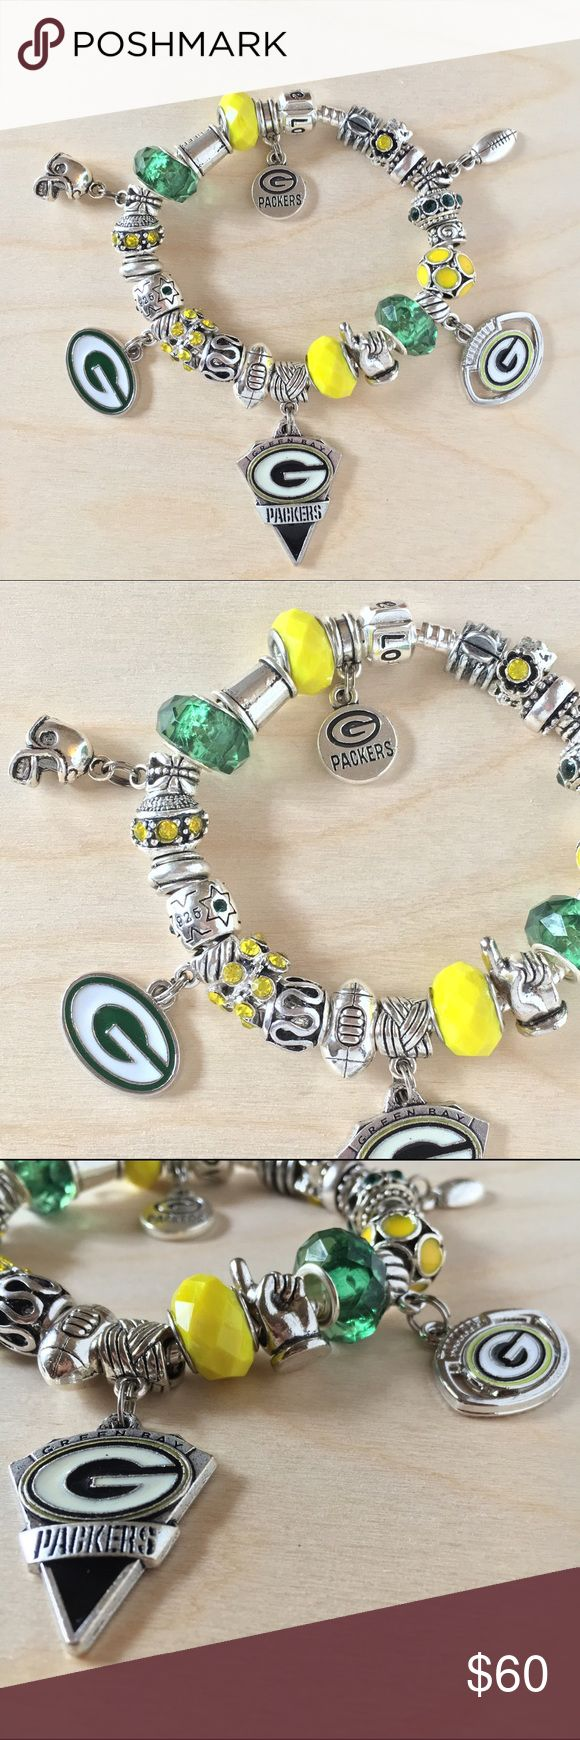 Green Bay Packers European Charm Bracelet NFL This listing is for 1 Bracelet completely filled w/charm beads as shown in the pictures. These beads are NOT sterling silver. Those types of beads cost at least $40.00 each. Our beads are Mostly made of glass and silver plated over zinc alloy and they might tarnish which is why we ask you 2 please make sure 2 not wash your hands or shower with your bracelet. No refunds or returns or exchanges will be given if they tarnish. Jewelry Bracelets